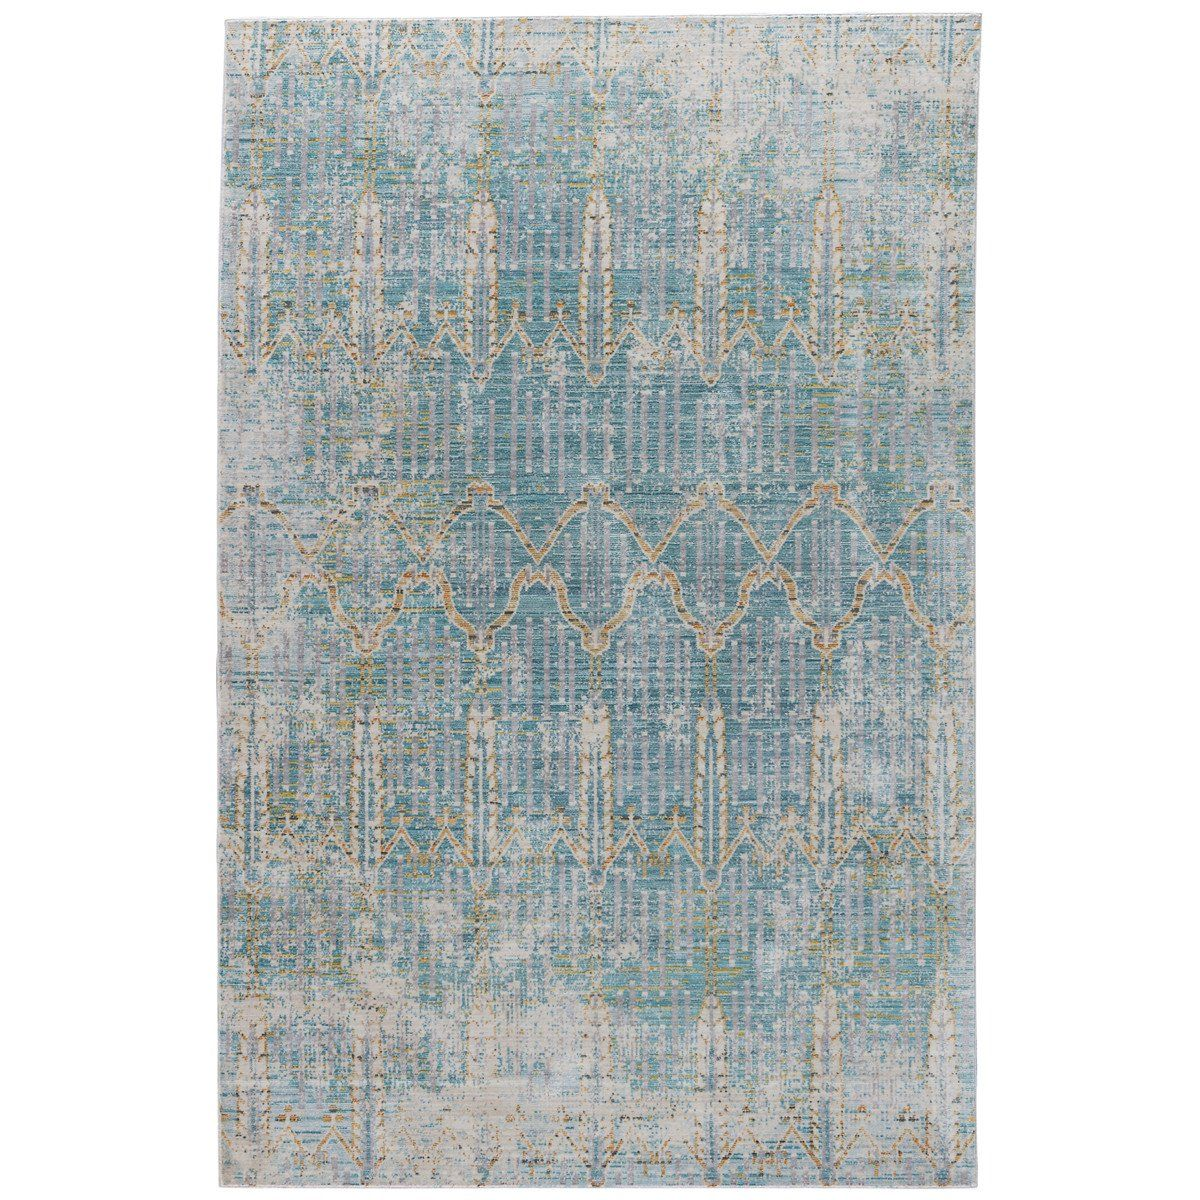 Jaipur Vintage Look Pattern Gray Blue Polypropylene Cer06 Rug With Images Area Rugs Aqua Rug Machine Made Rugs